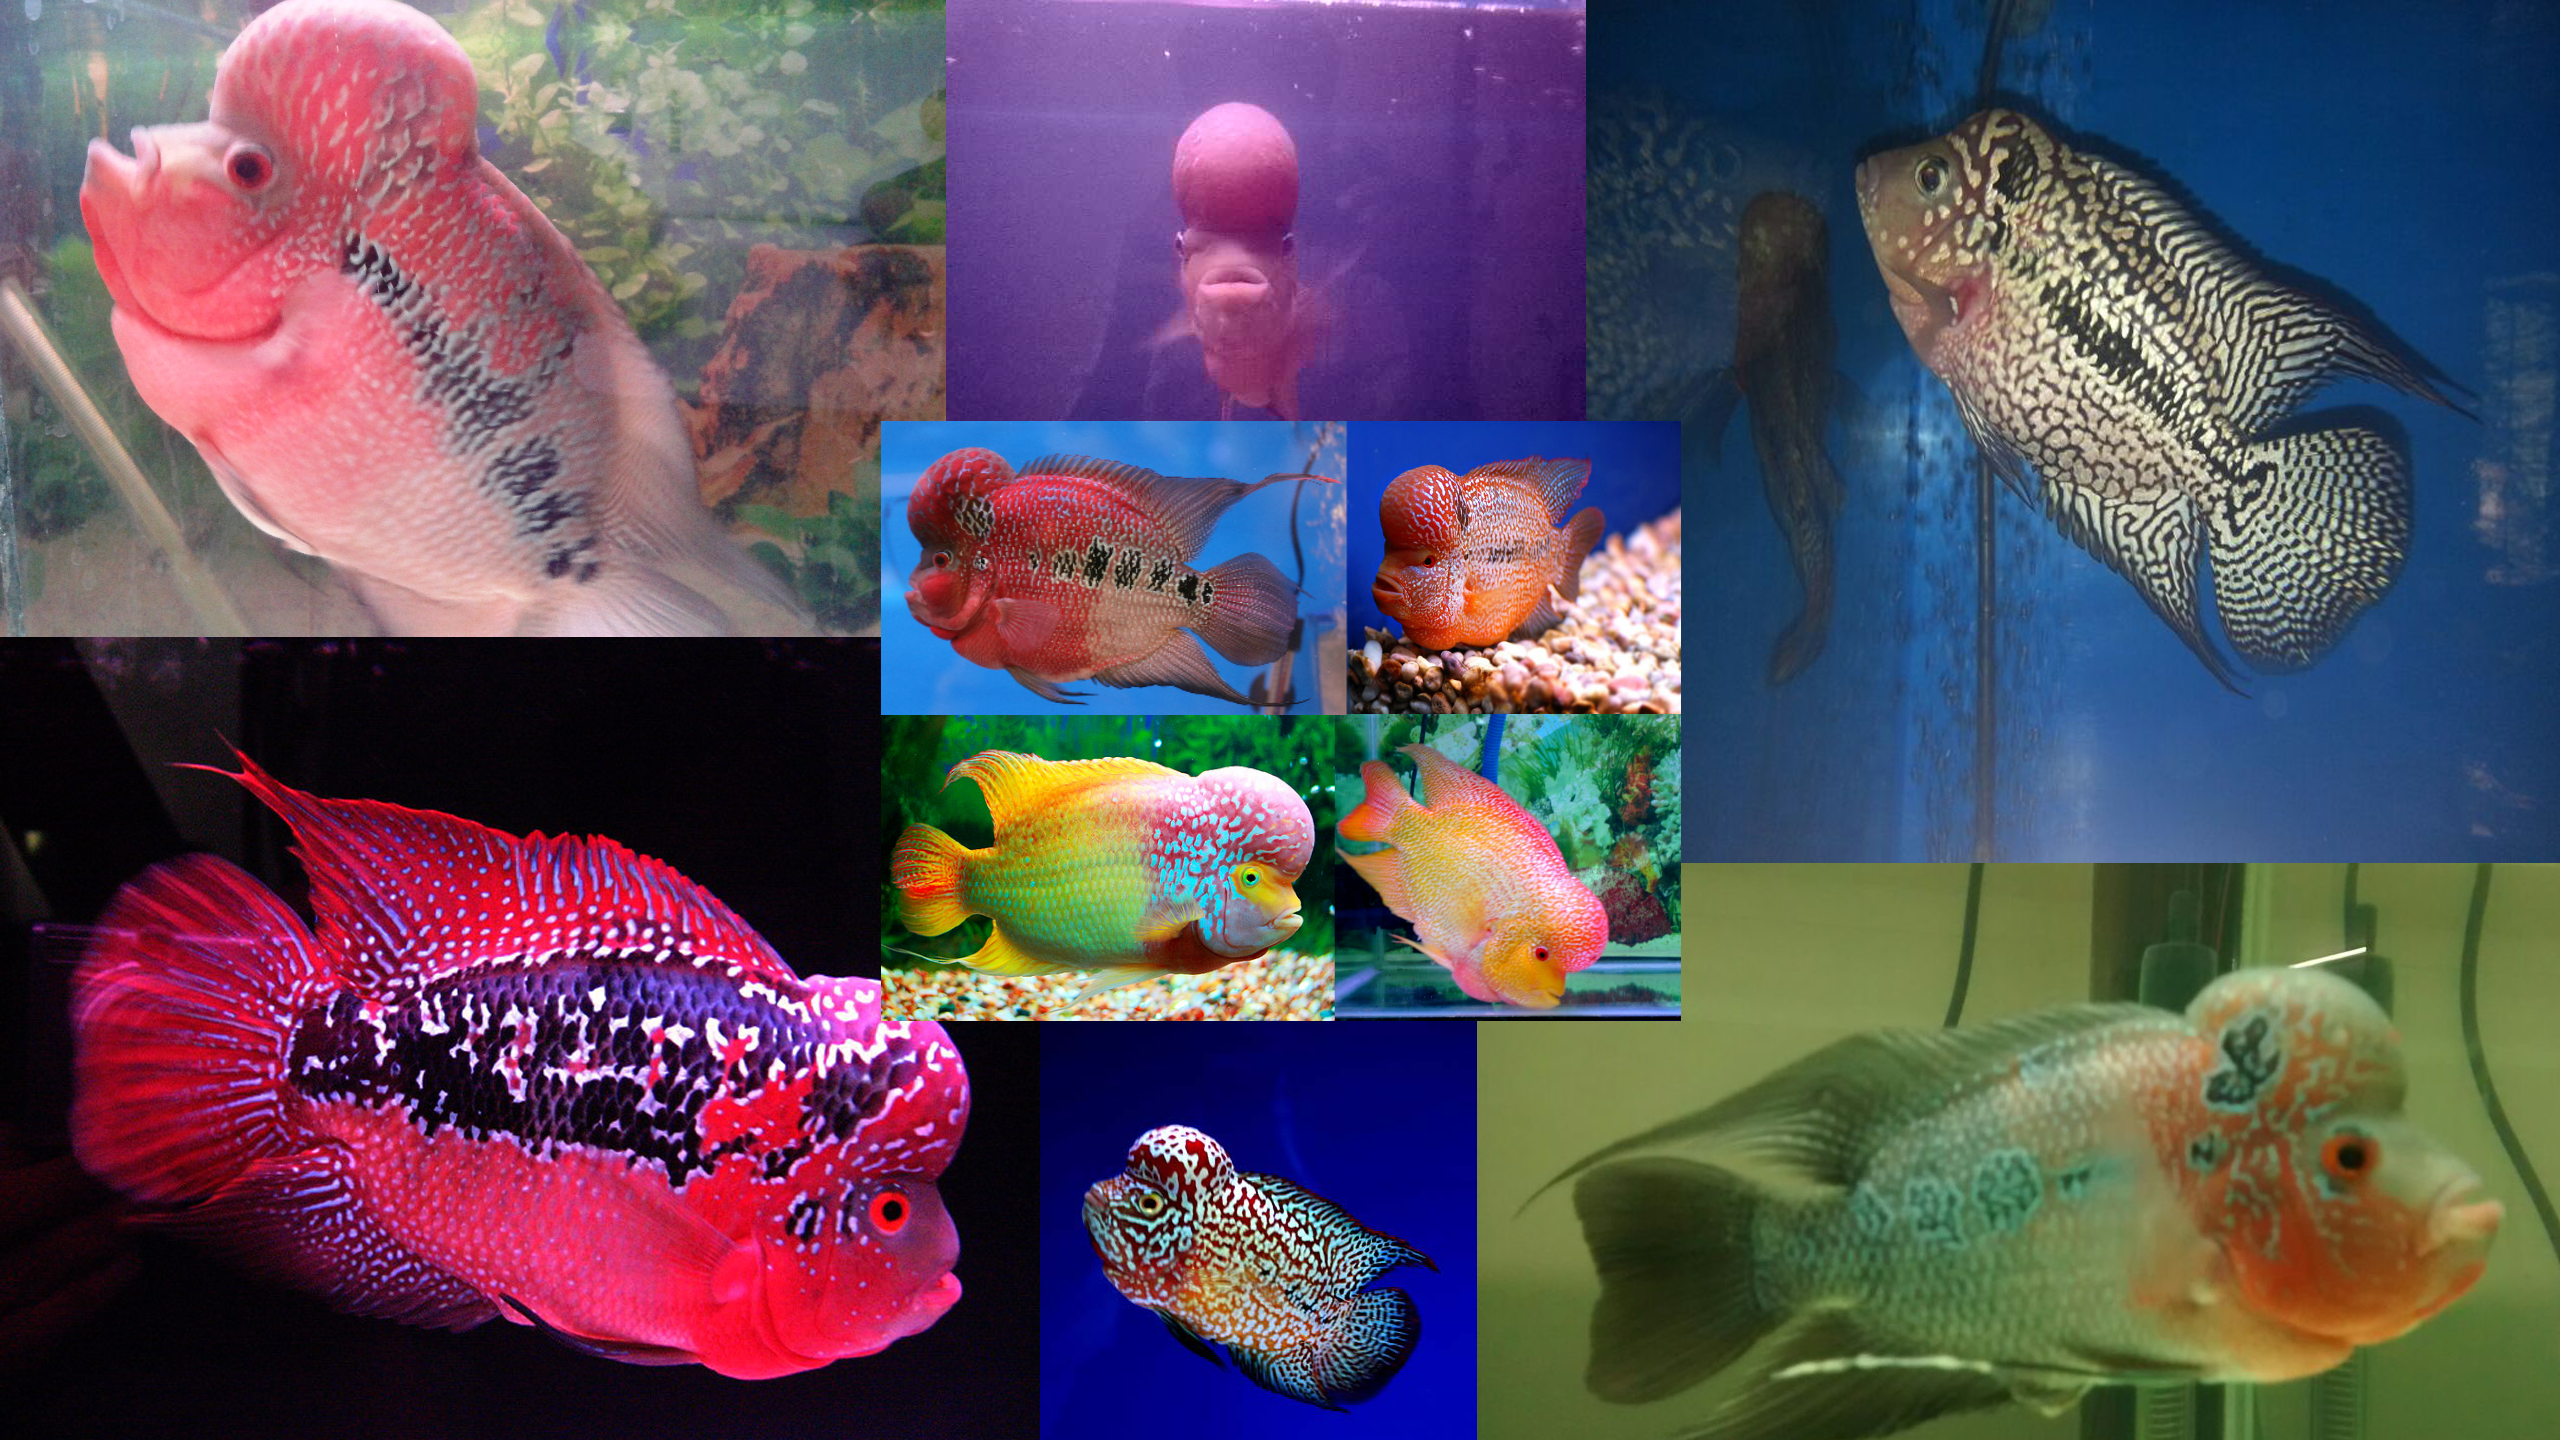 My Treated Flowerhorn from all Diseases